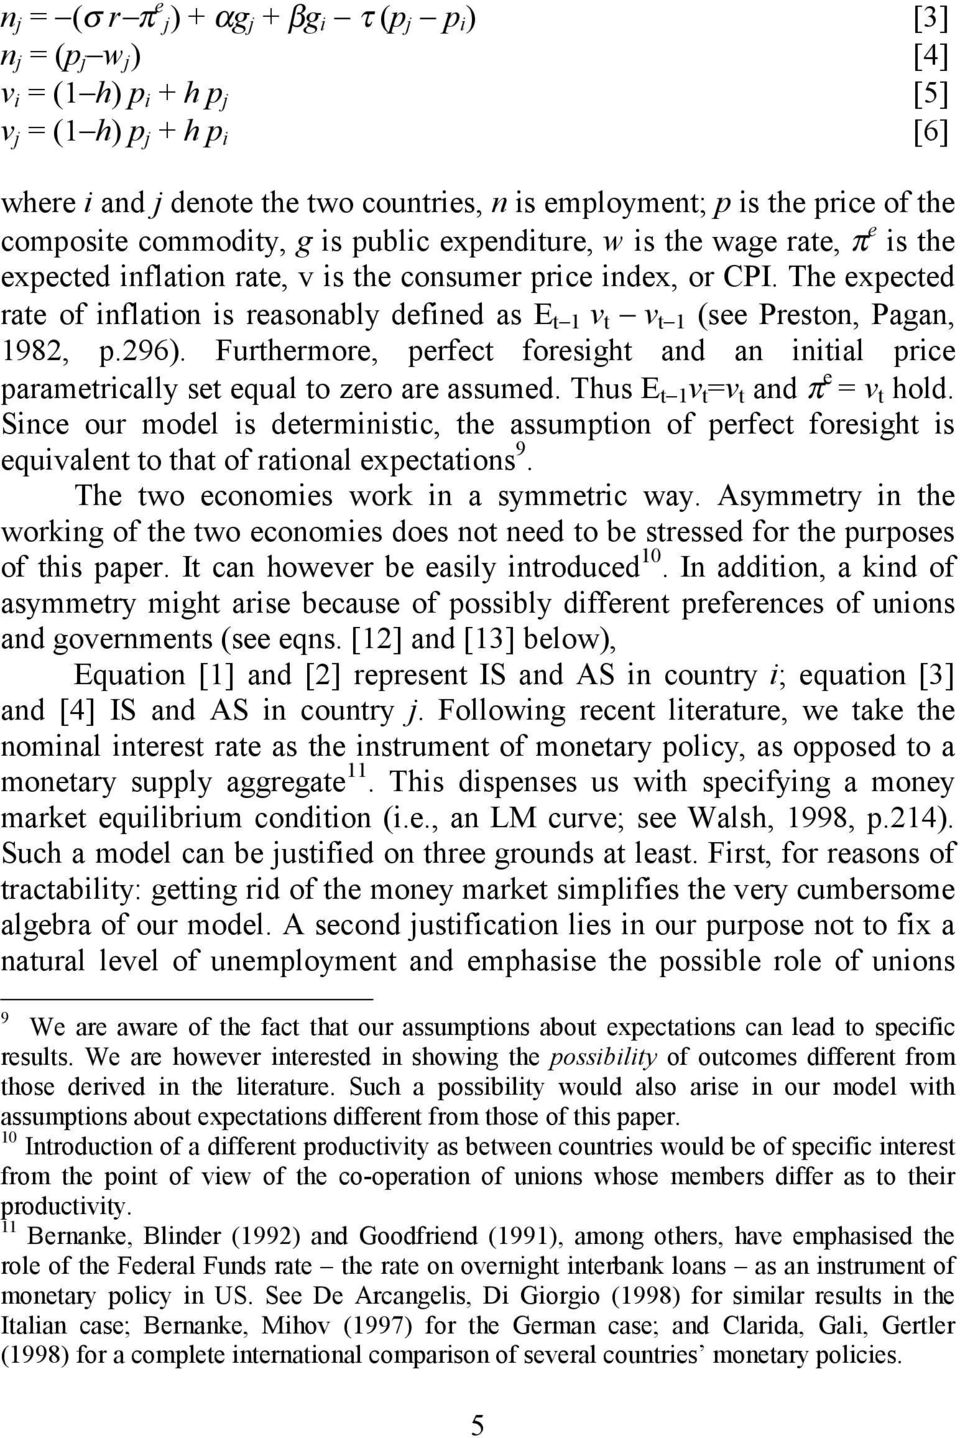 The expected rate of inflation is reasonably defined as E t 1 v t v t 1 (see Preston, Pagan, 1982, p.296).